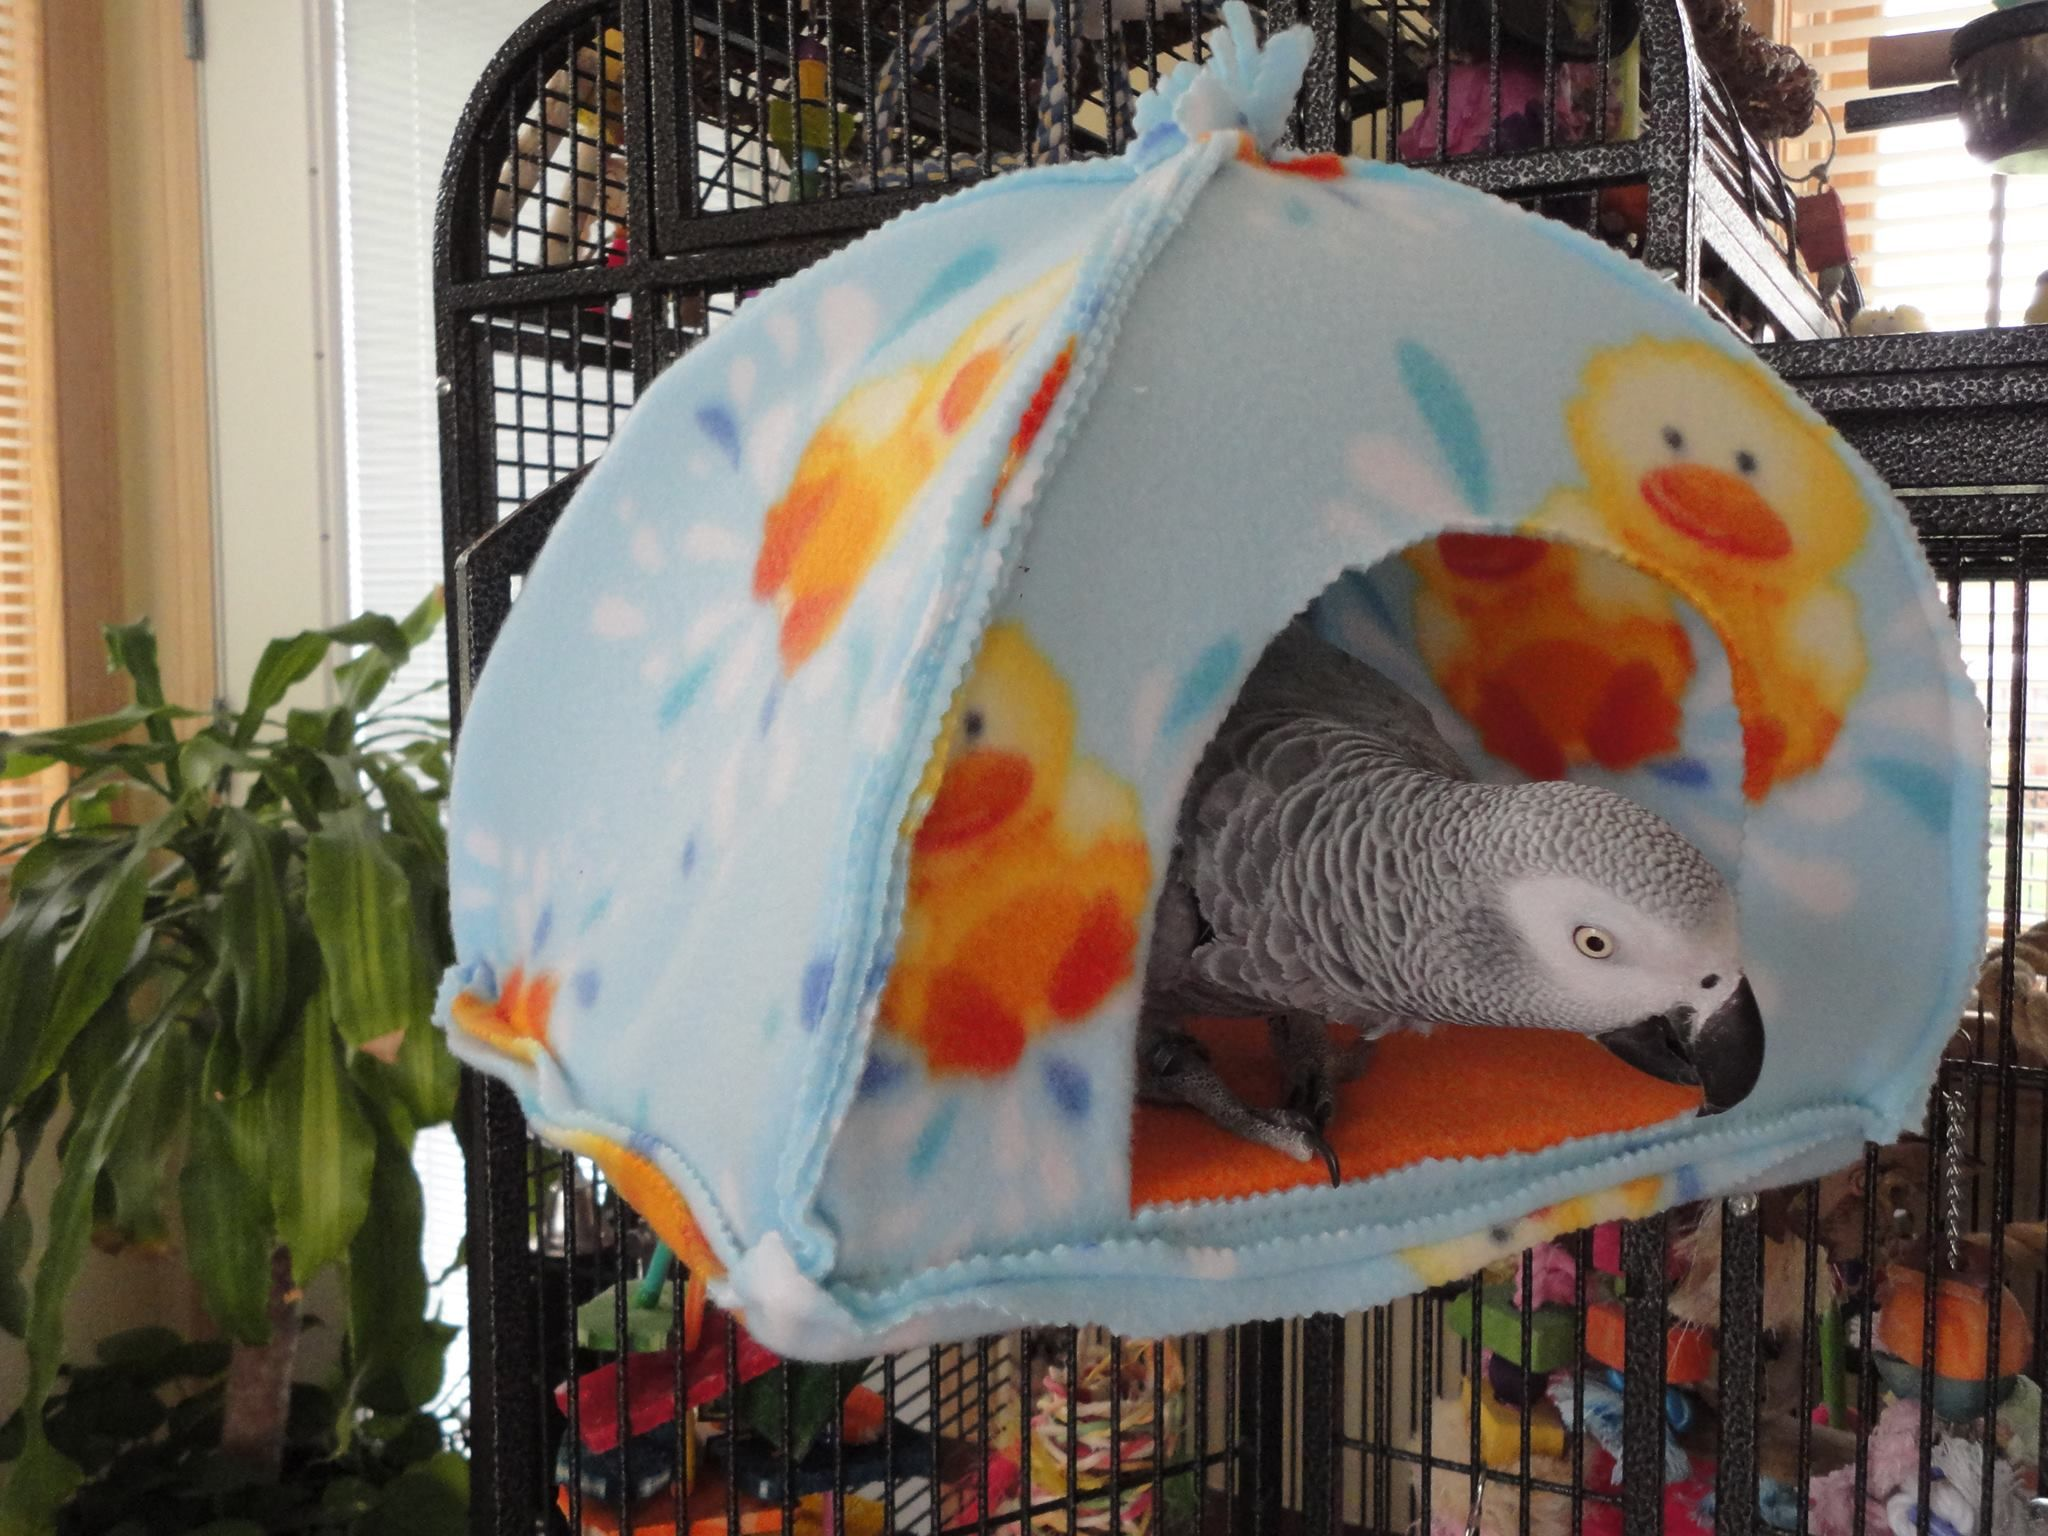 DIY Projects for Pets: Parrot Sleeping Tent